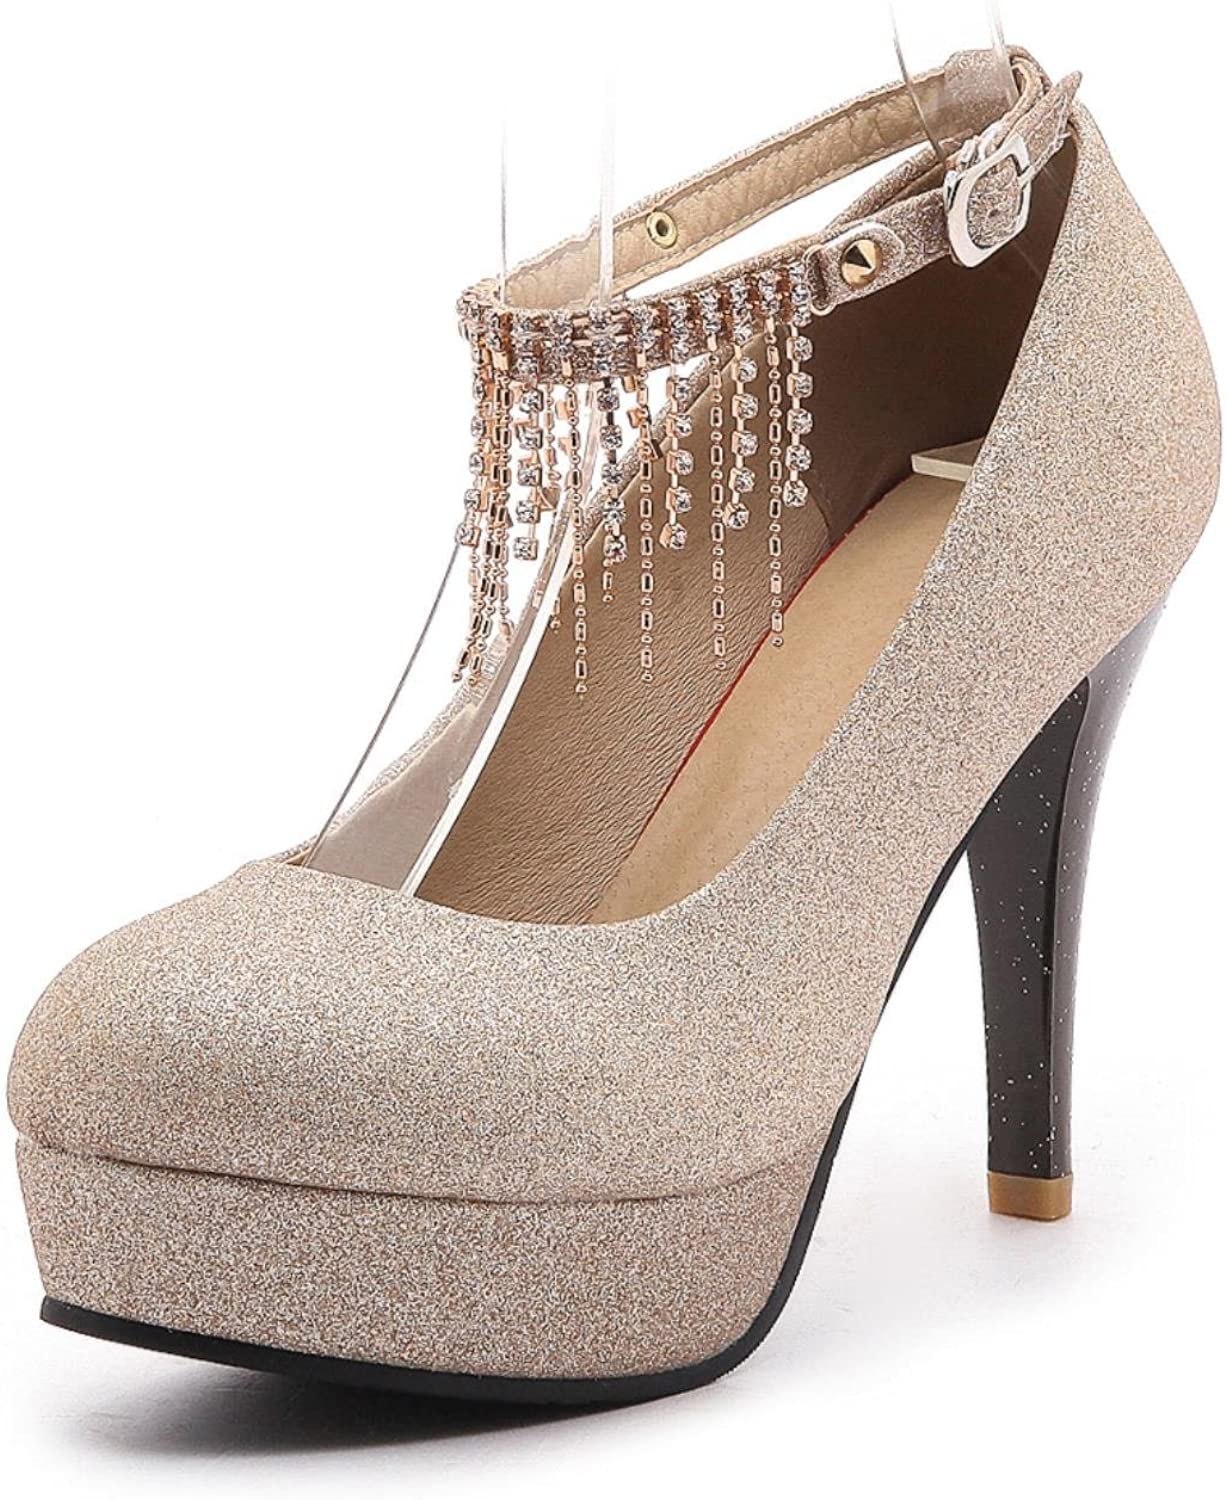 Thin High Heels Leisure Party Wedding Woman Pumps Trendy Crystals